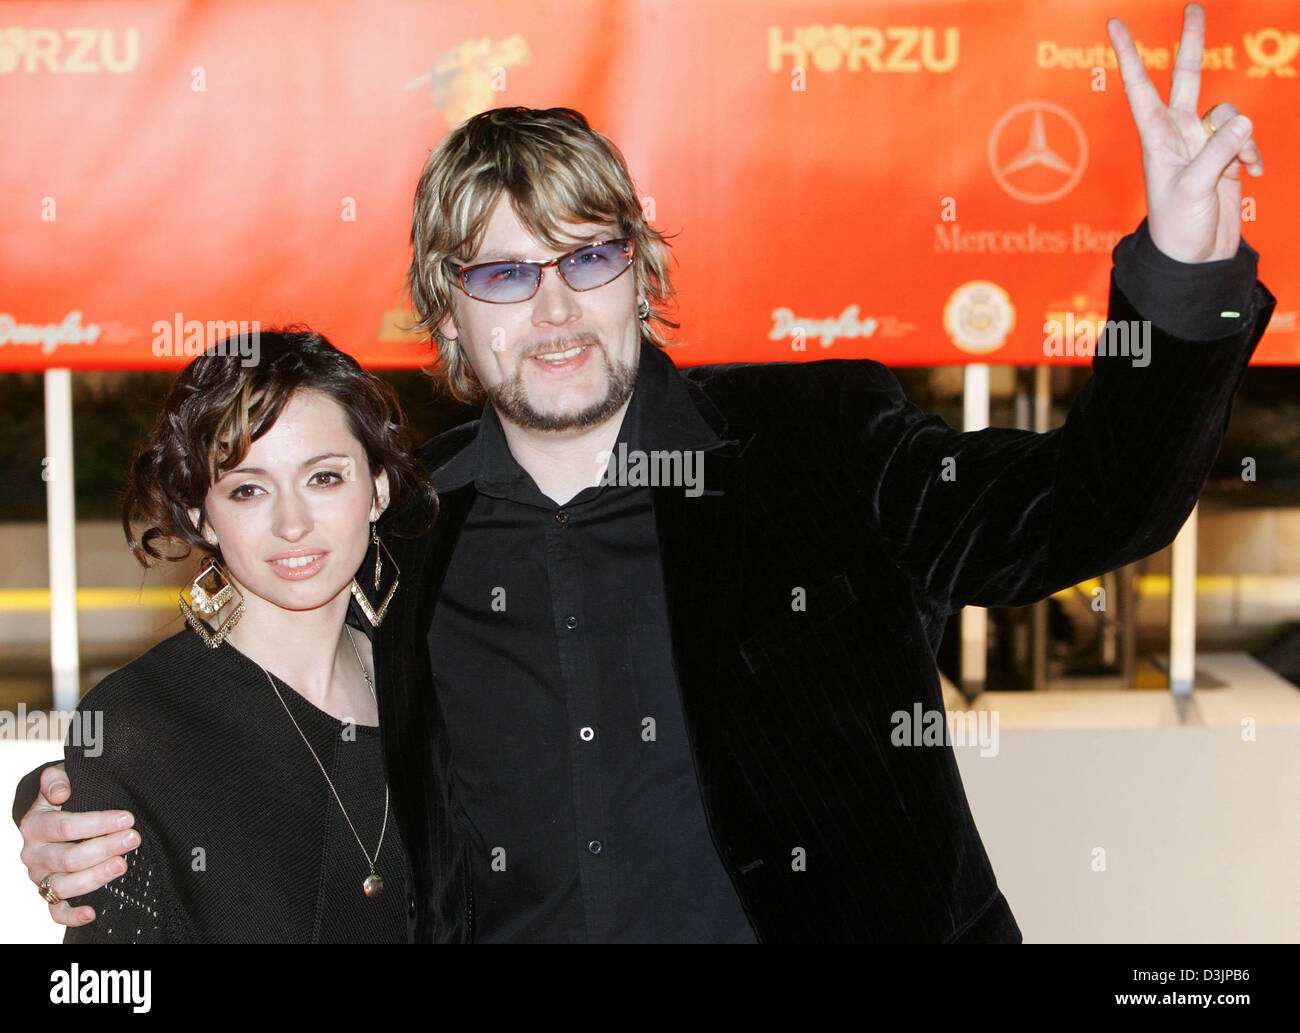 Dpa Rea Garvey Singer Of The British Pop Group Reamonn And His Stock Photo Alamy